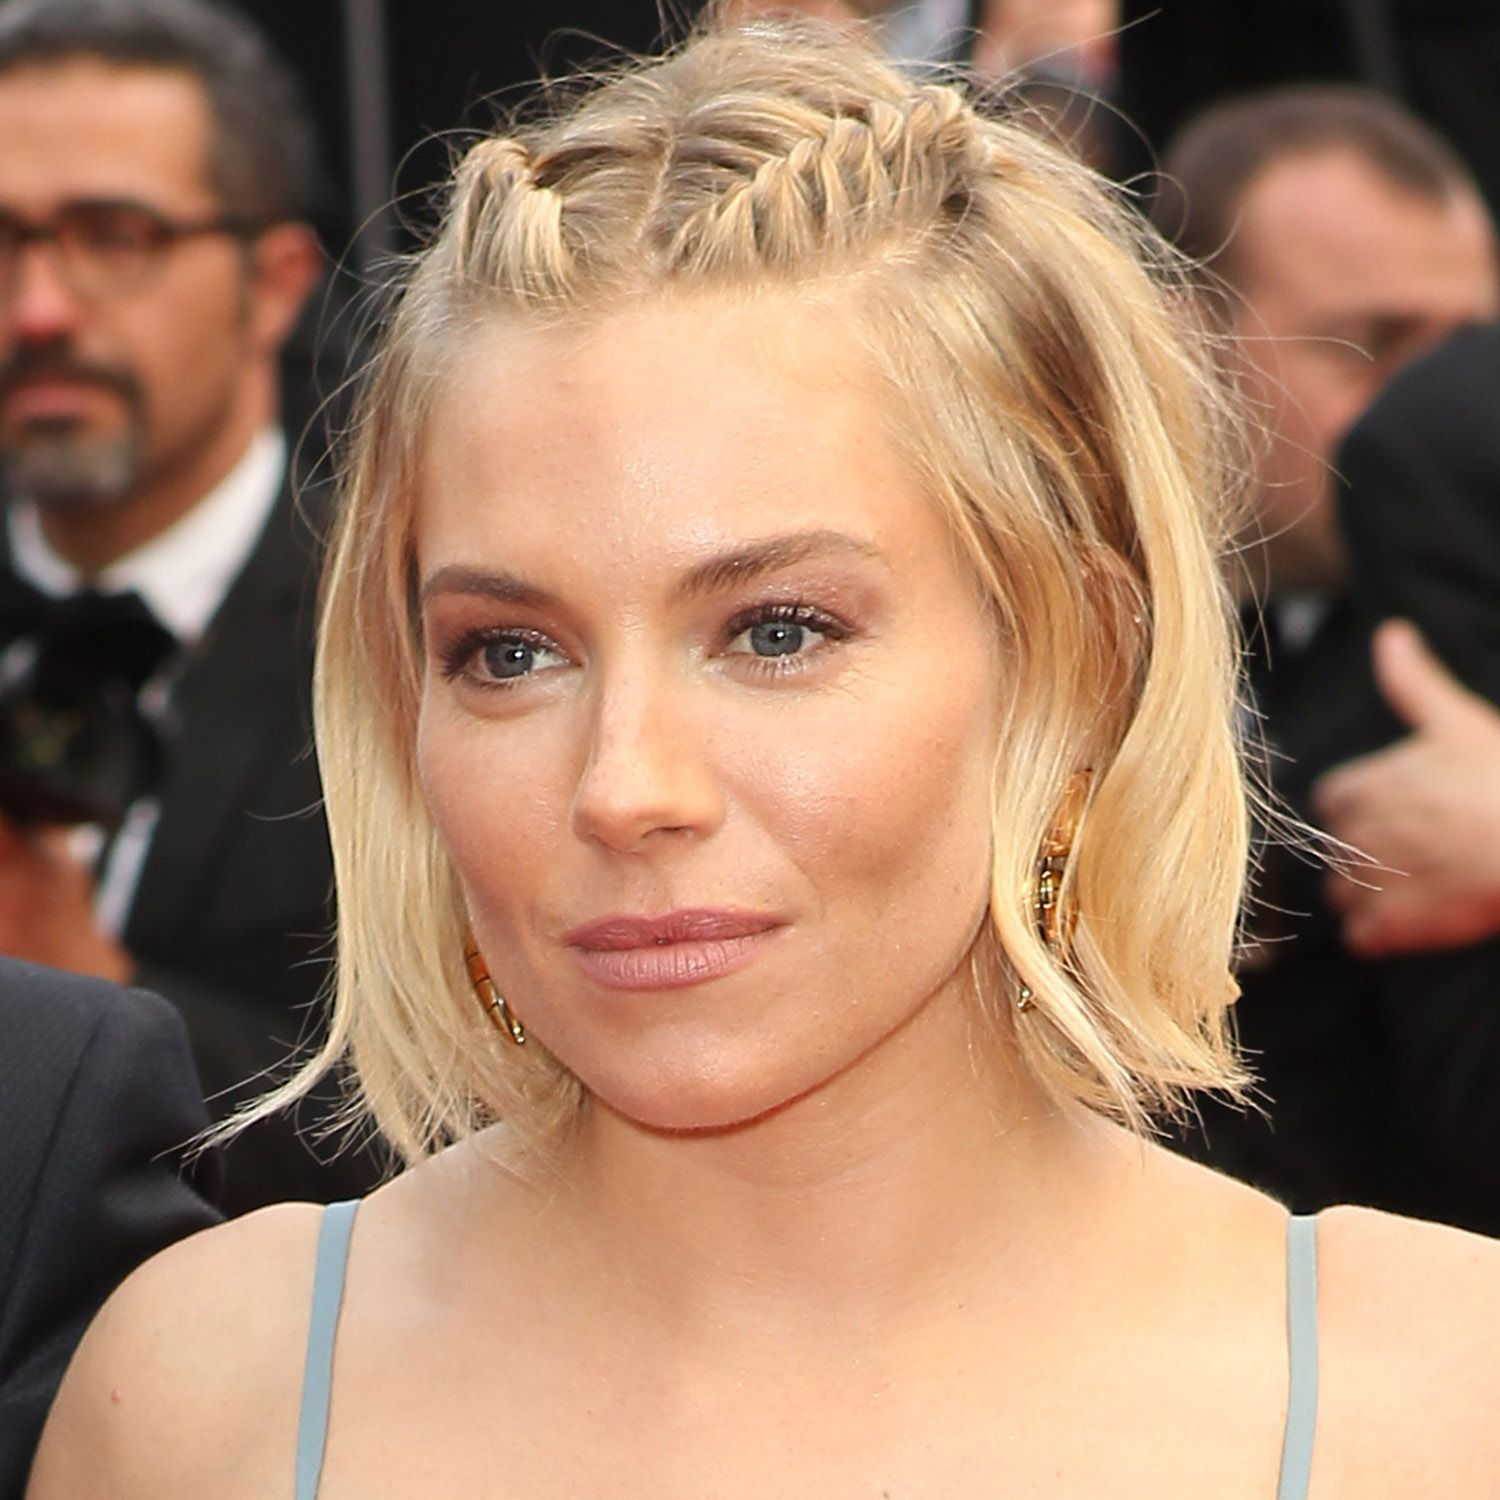 """CANNES, FRANCE - MAY 24: Sienna Miller attends the closing ceremony and """"Le Glace Et Le Ciel"""" (""""Ice And The Sky"""") premiere during the 68th annual Cannes Film Festival on May 24, 2015 in Cannes, France.  (Photo by Antonio de Moraes Barros Filho/FilmMagic,)"""